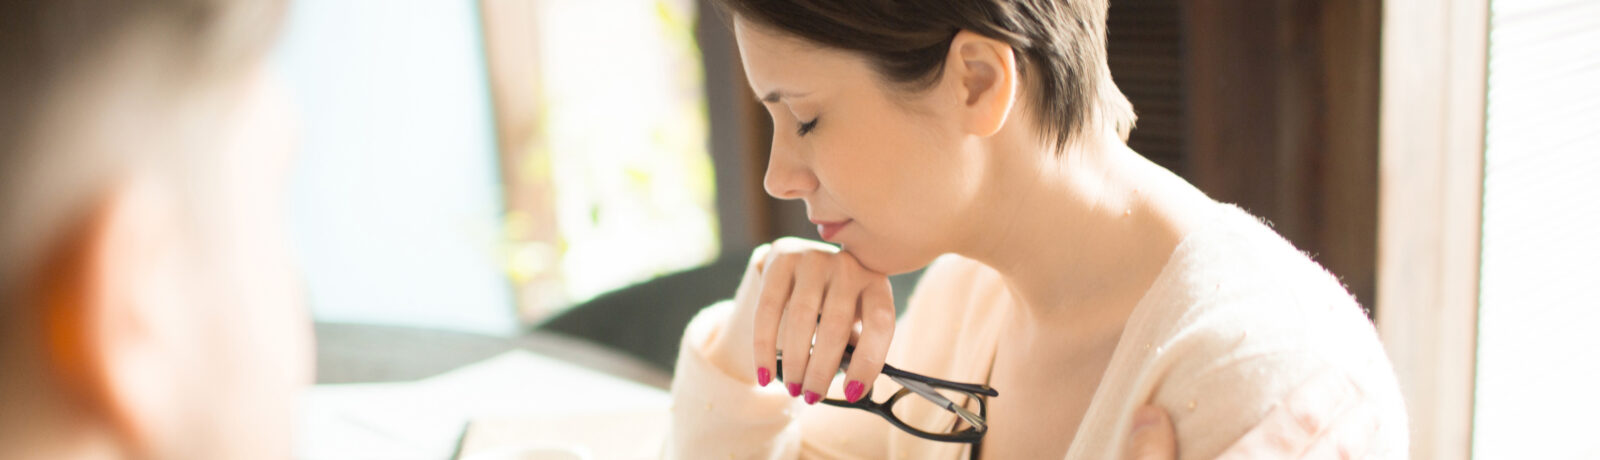 Exhausted adult woman holding glasses and keeping eyes closed while sitting near colleague at cafe table.